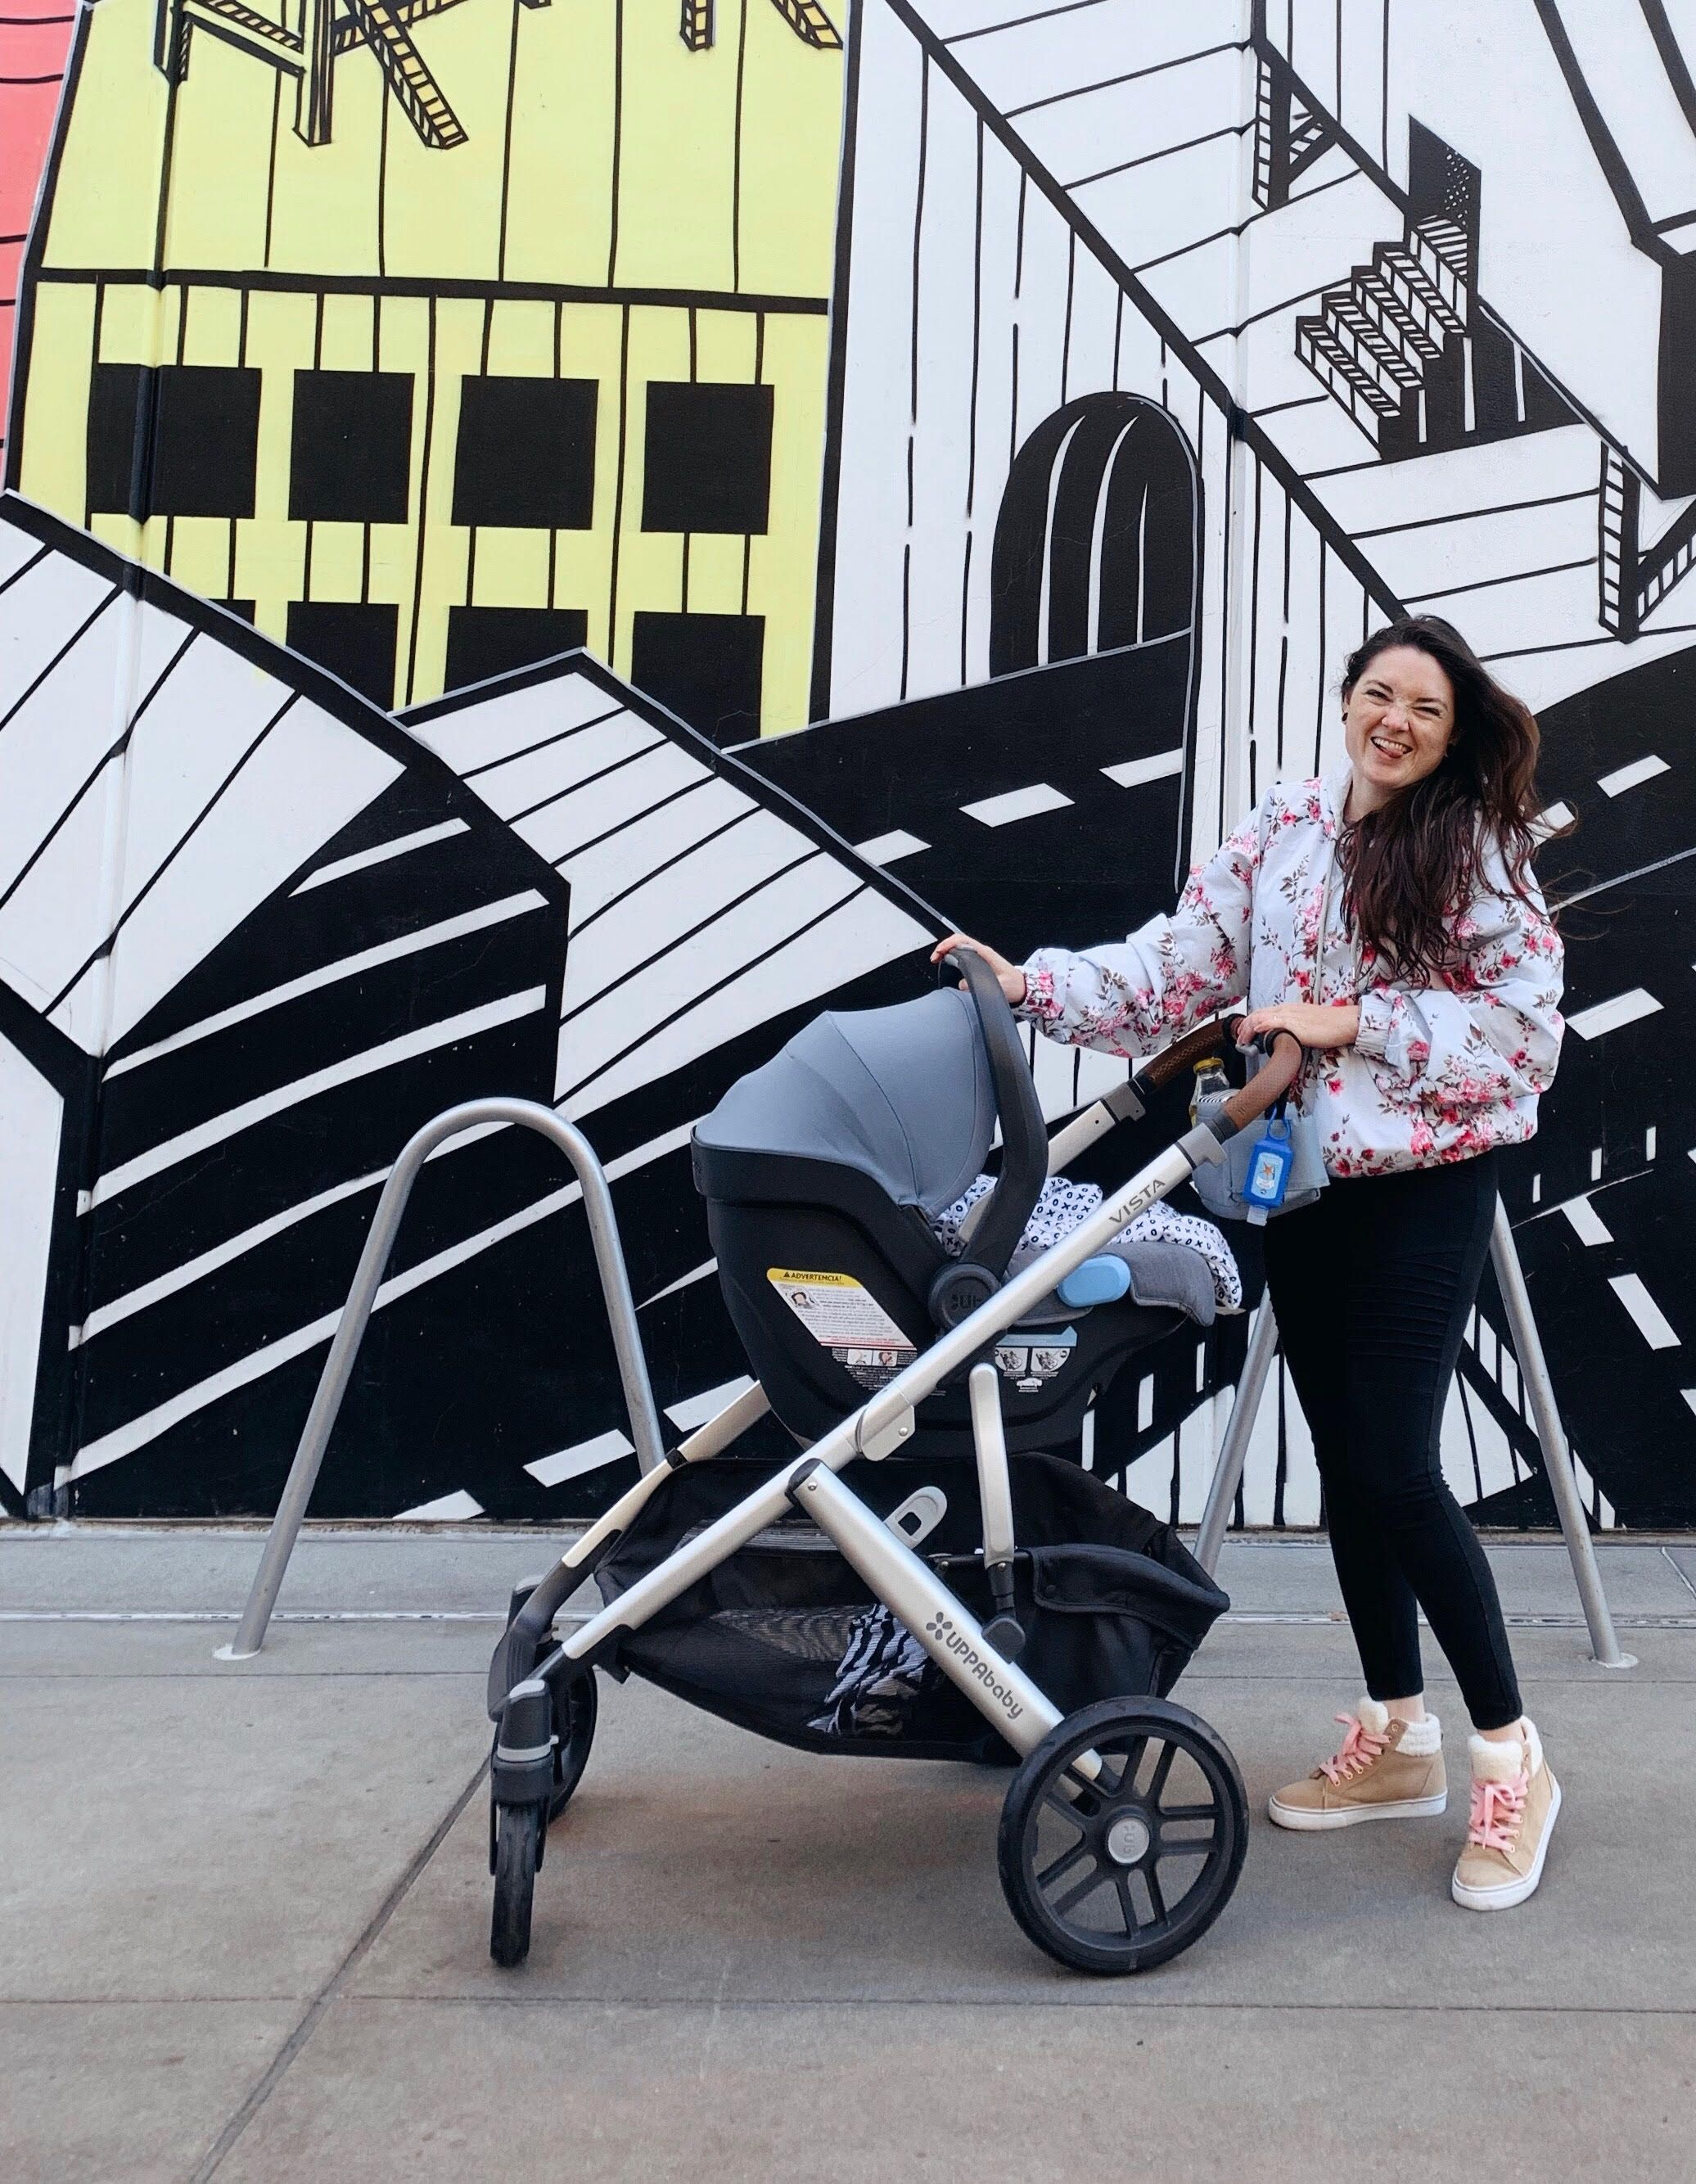 My stroller is a uppababy VISTA, color HENRY. I'm loving